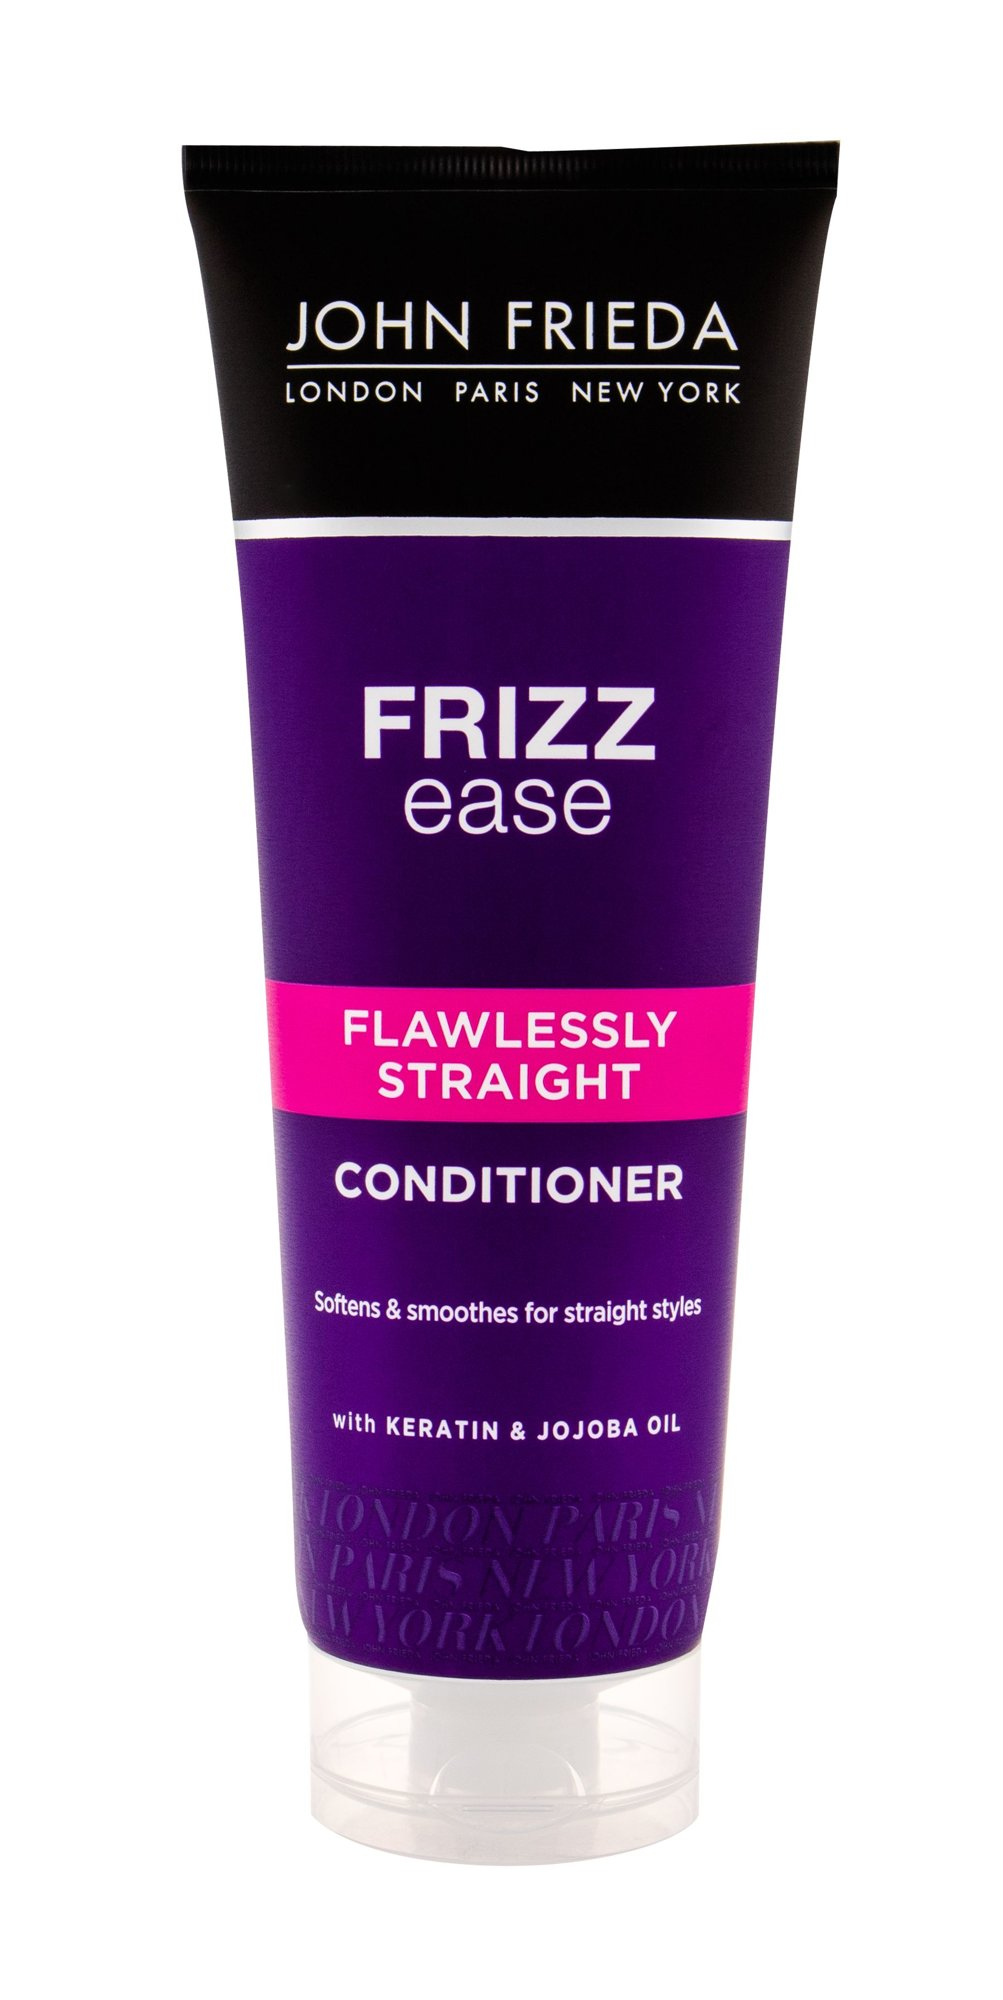 John Frieda Frizz Ease Conditioner 250ml